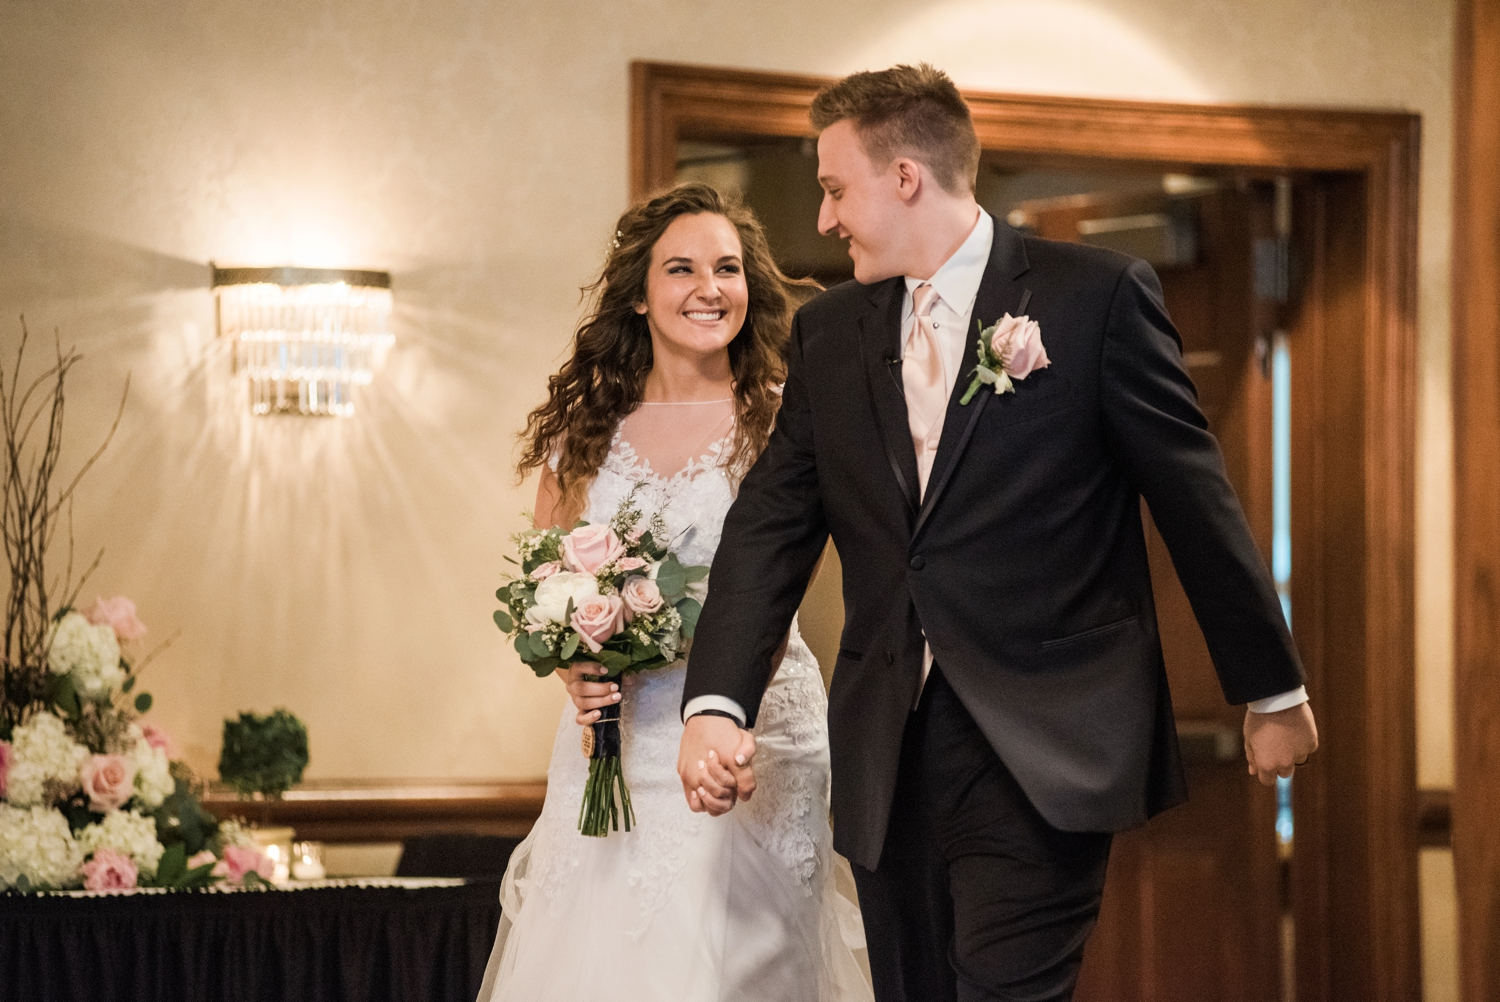 Community_Life_Center_Indianapolis_Indiana_Wedding_Photographer_Chloe_Luka_Photography_6981.jpg